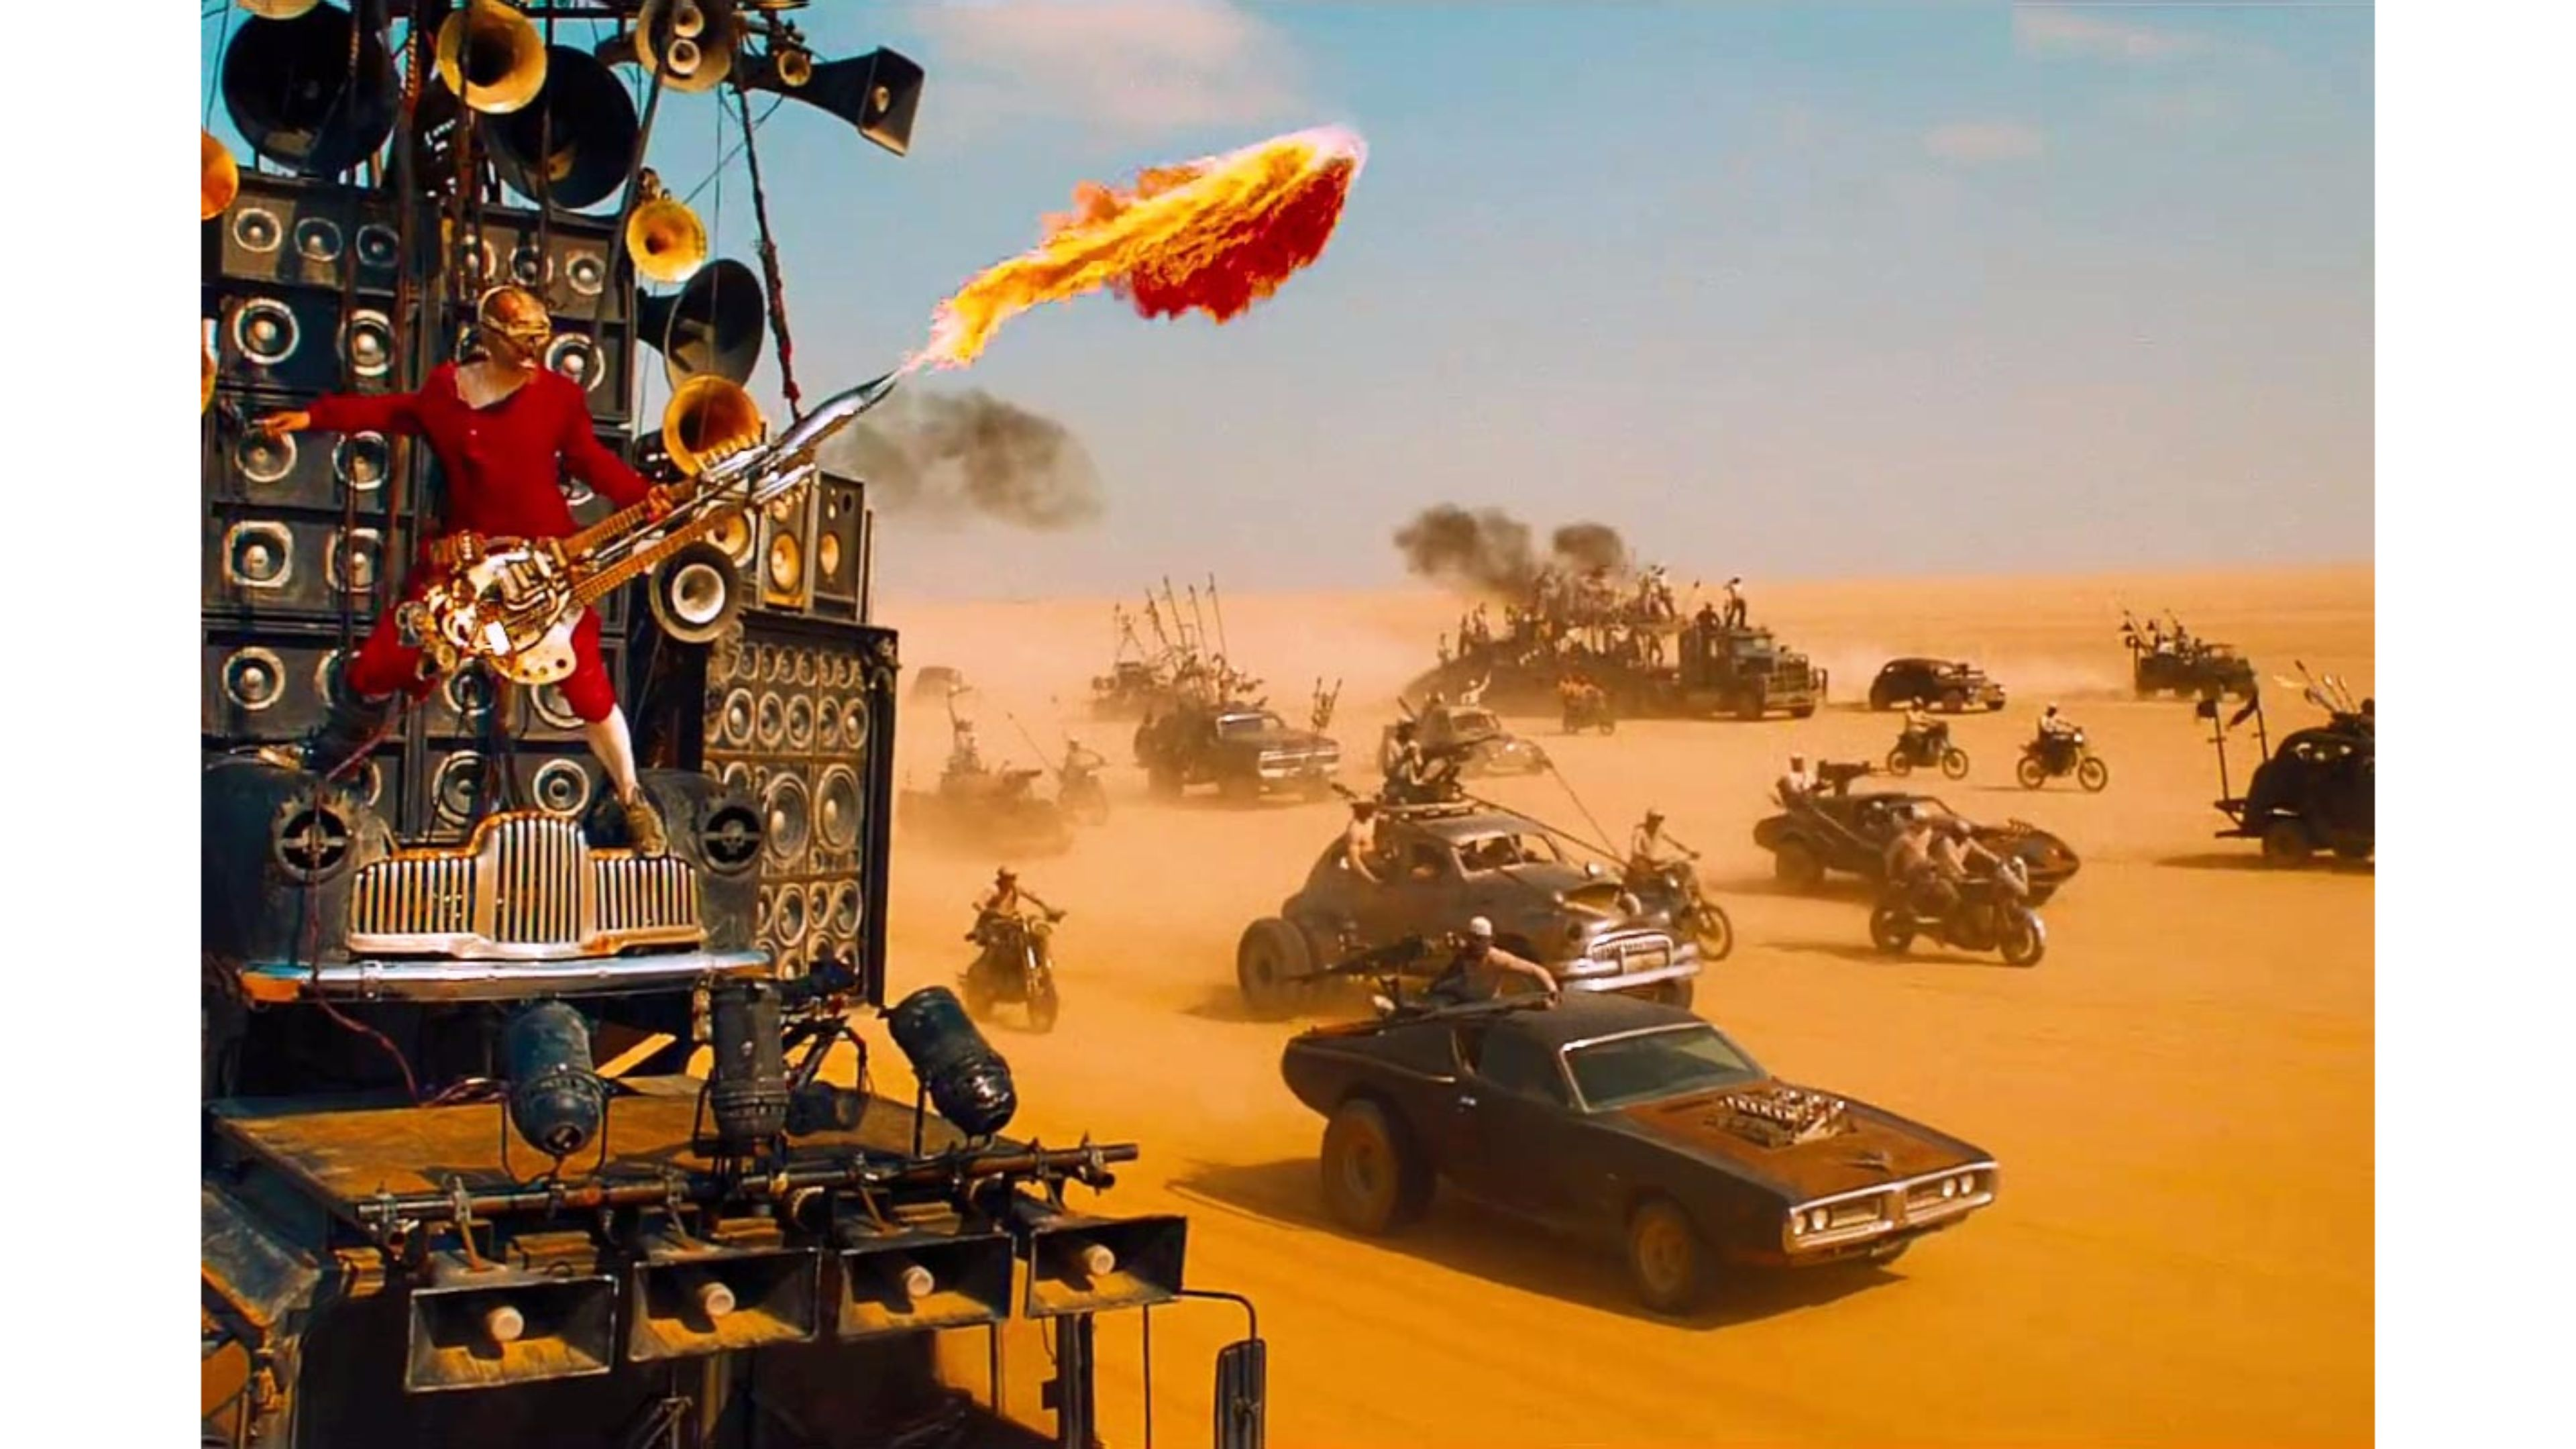 Movie Mad Max Fury Road wallpaper